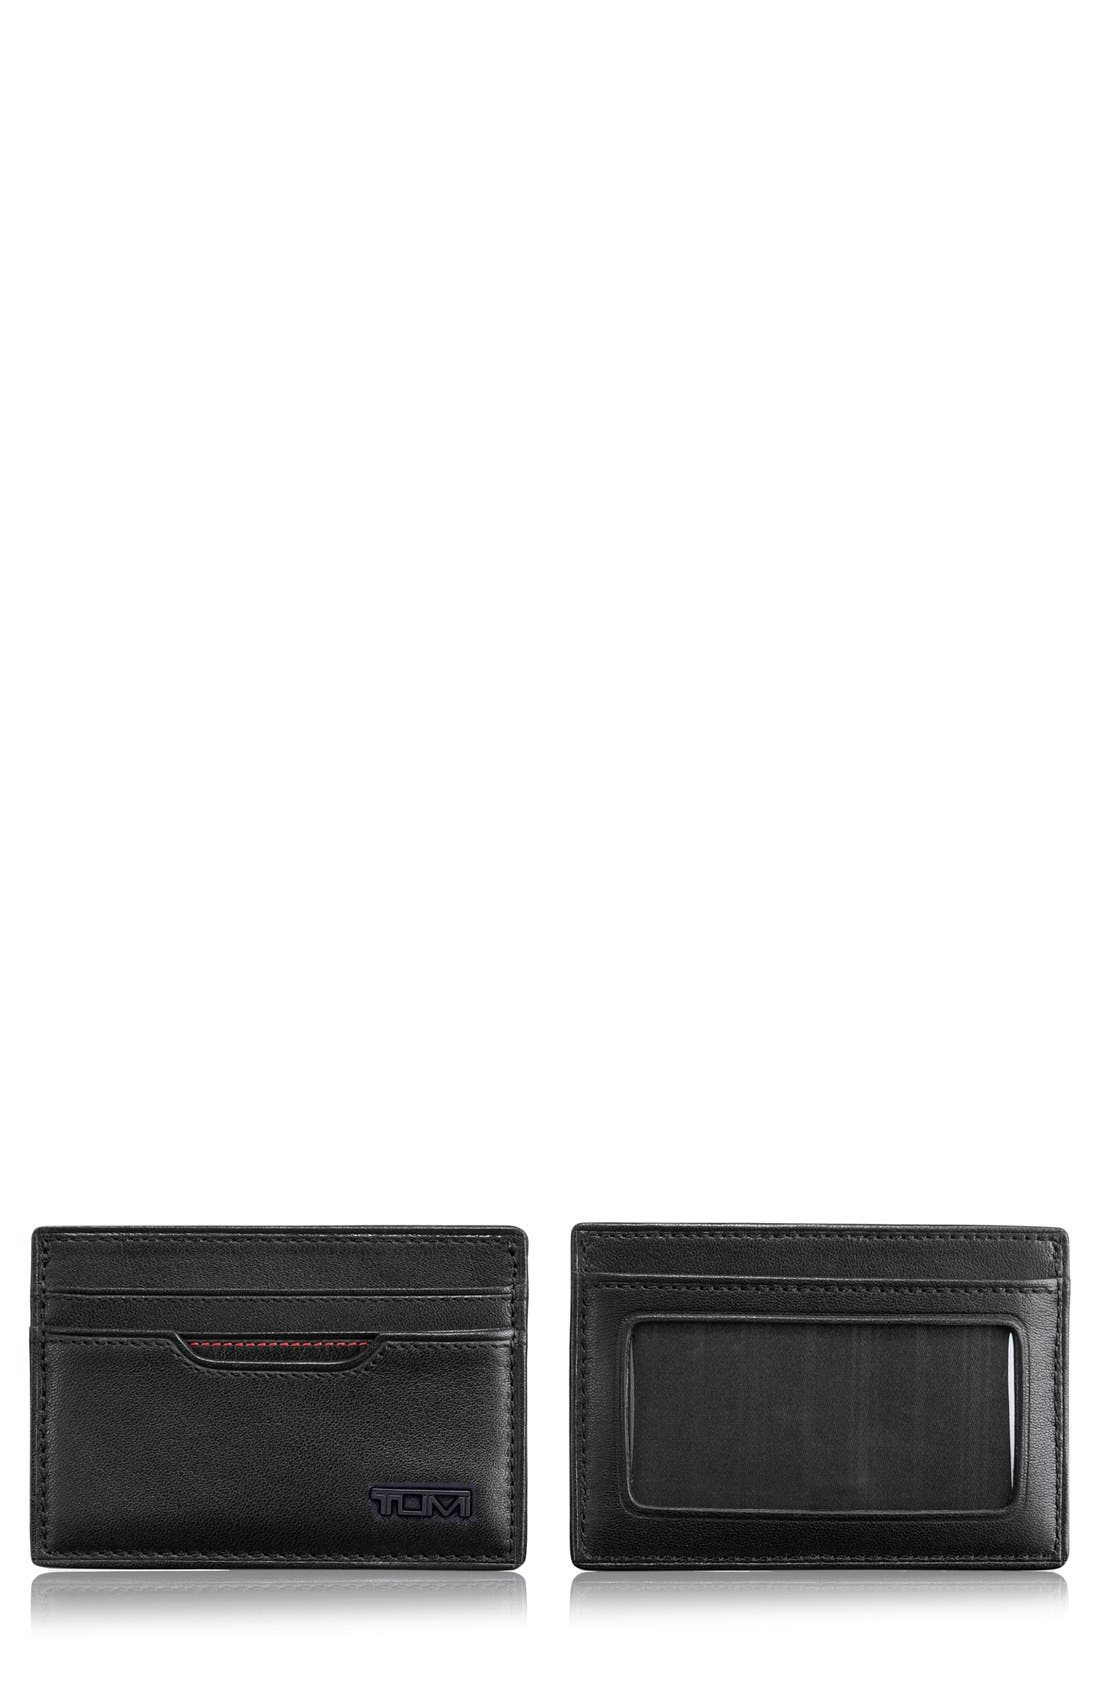 TUMI Delta - ID Lock<sup>™</sup> Shielded Slim Card Case & ID Wallet